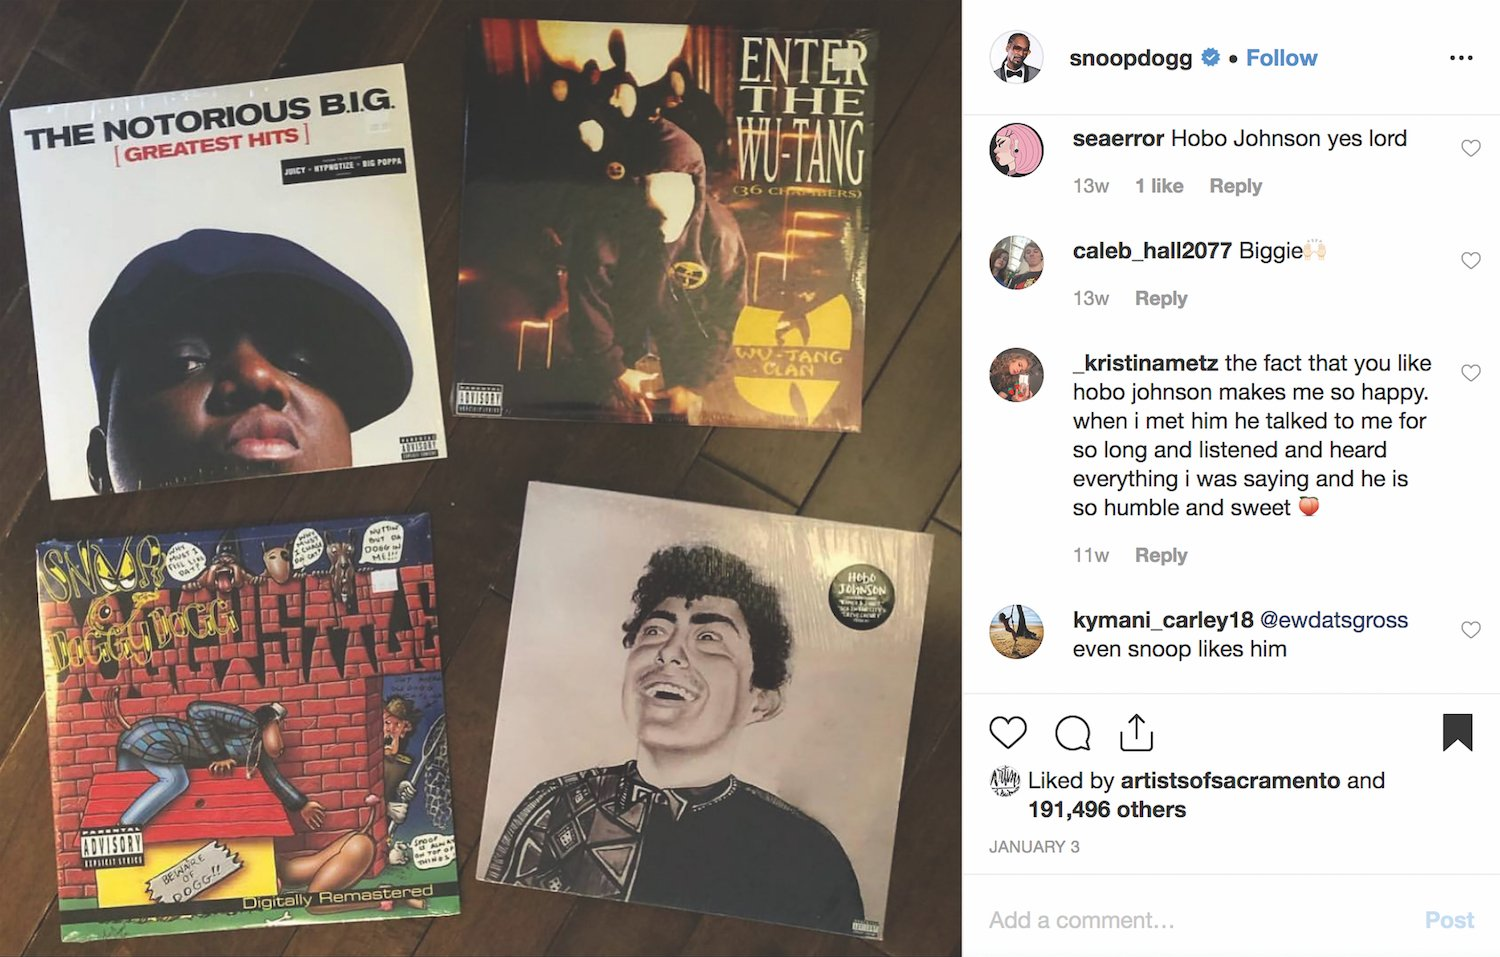 In good company: Snoop Dogg's Instagram post in January spotlighted a Hobo Johnson album (bottom right) along with one of his own and those by the Wu-Tang Clan and The Notorious B.I.G.